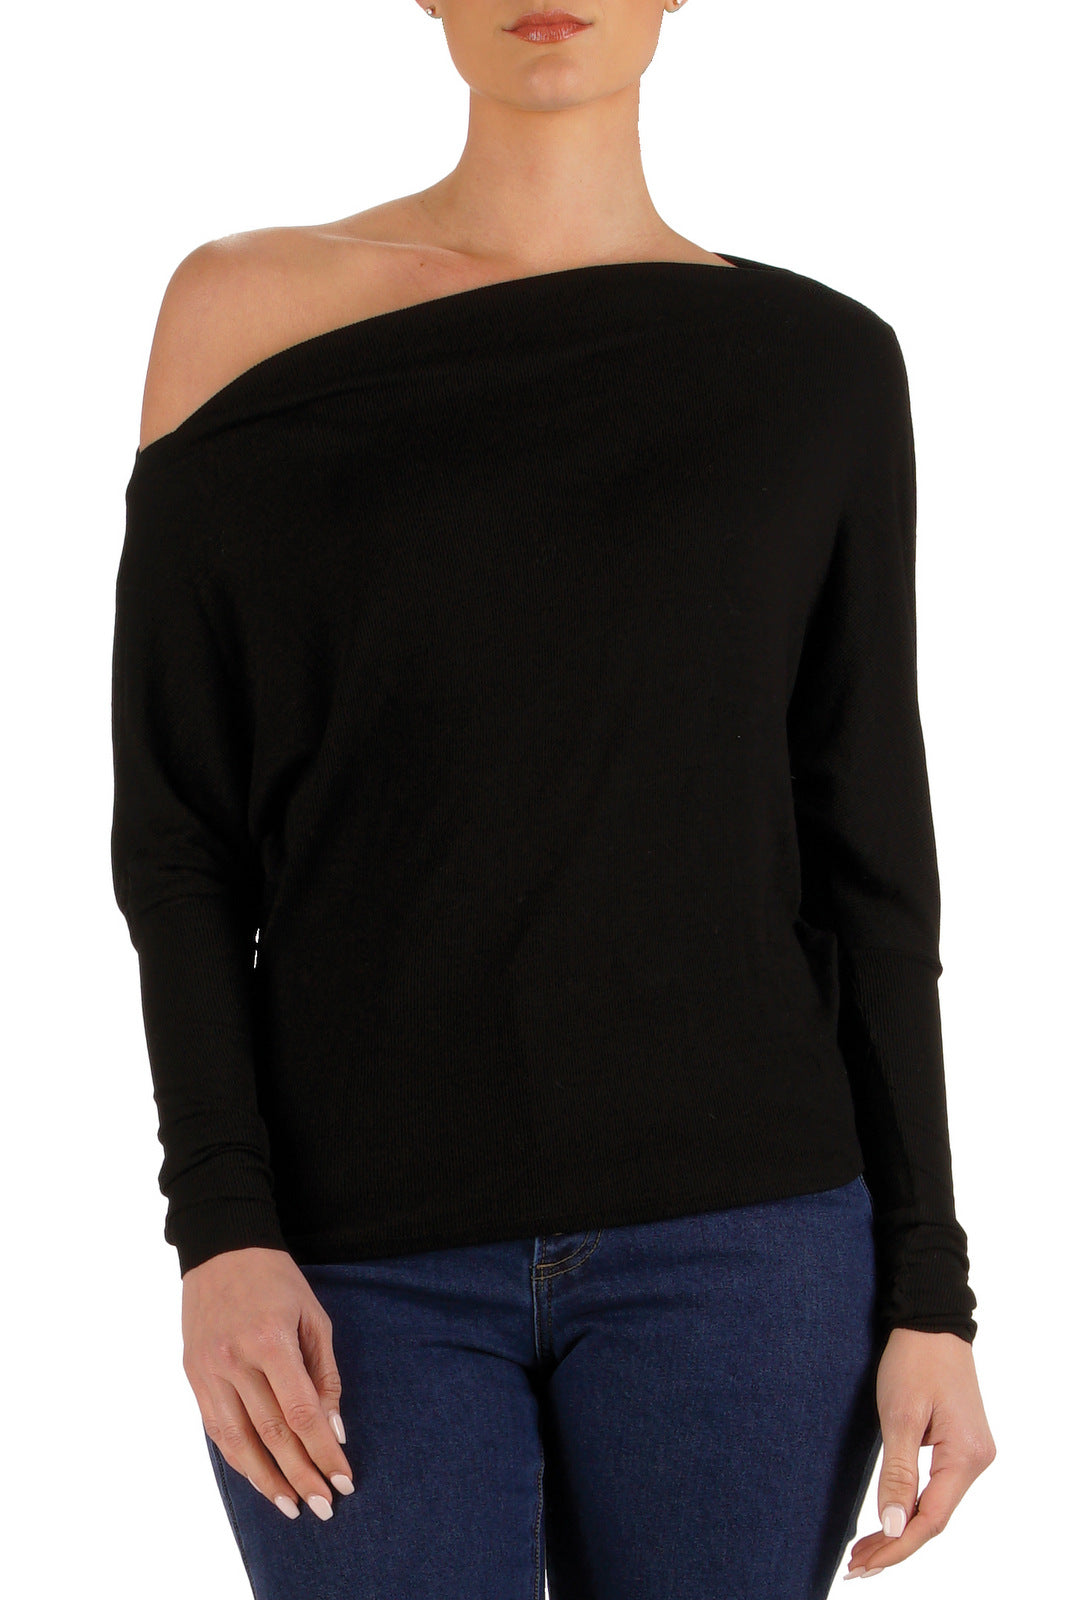 Ribbed Teal Off the Shoulder Top with Long Dolman Sleeves